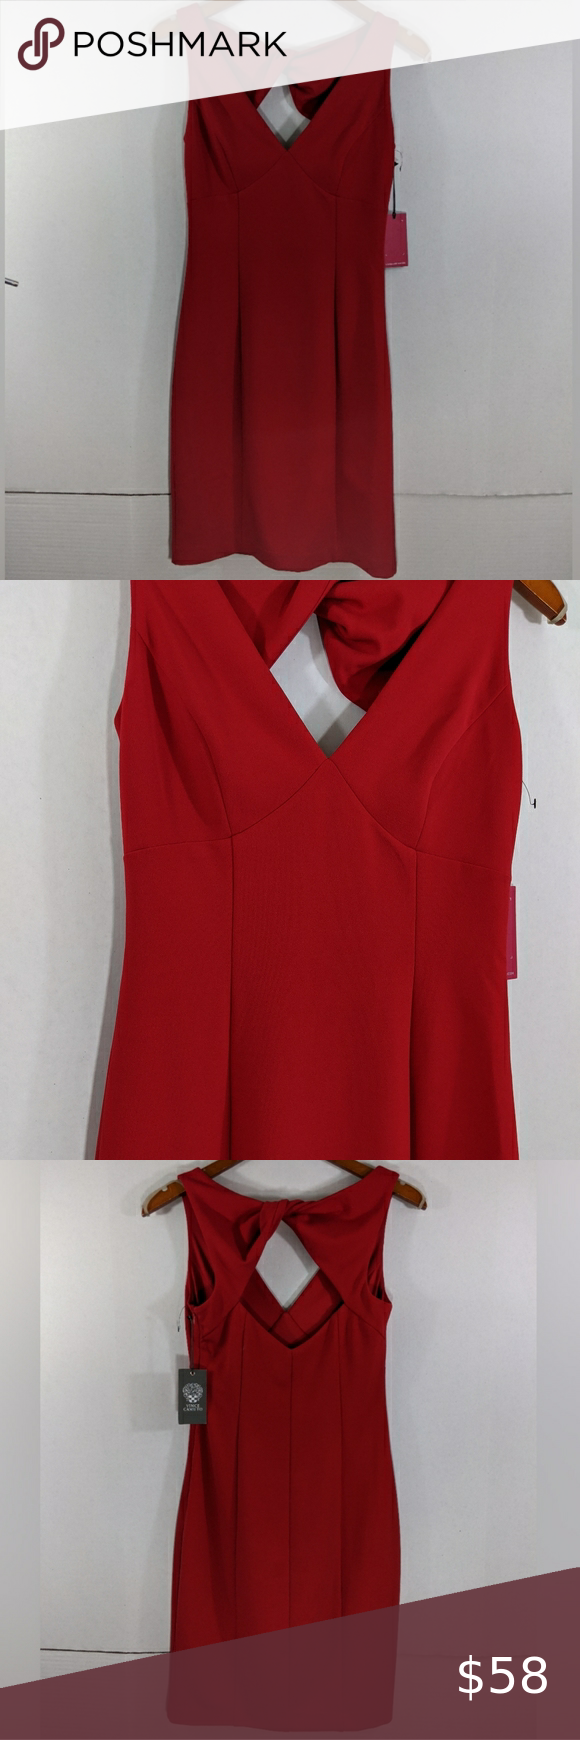 Vince Camuto Twist Open Back Cocktail Red Dress 2 Red Cocktail Dress Red Sheath Dress Red Dress [ 1740 x 580 Pixel ]